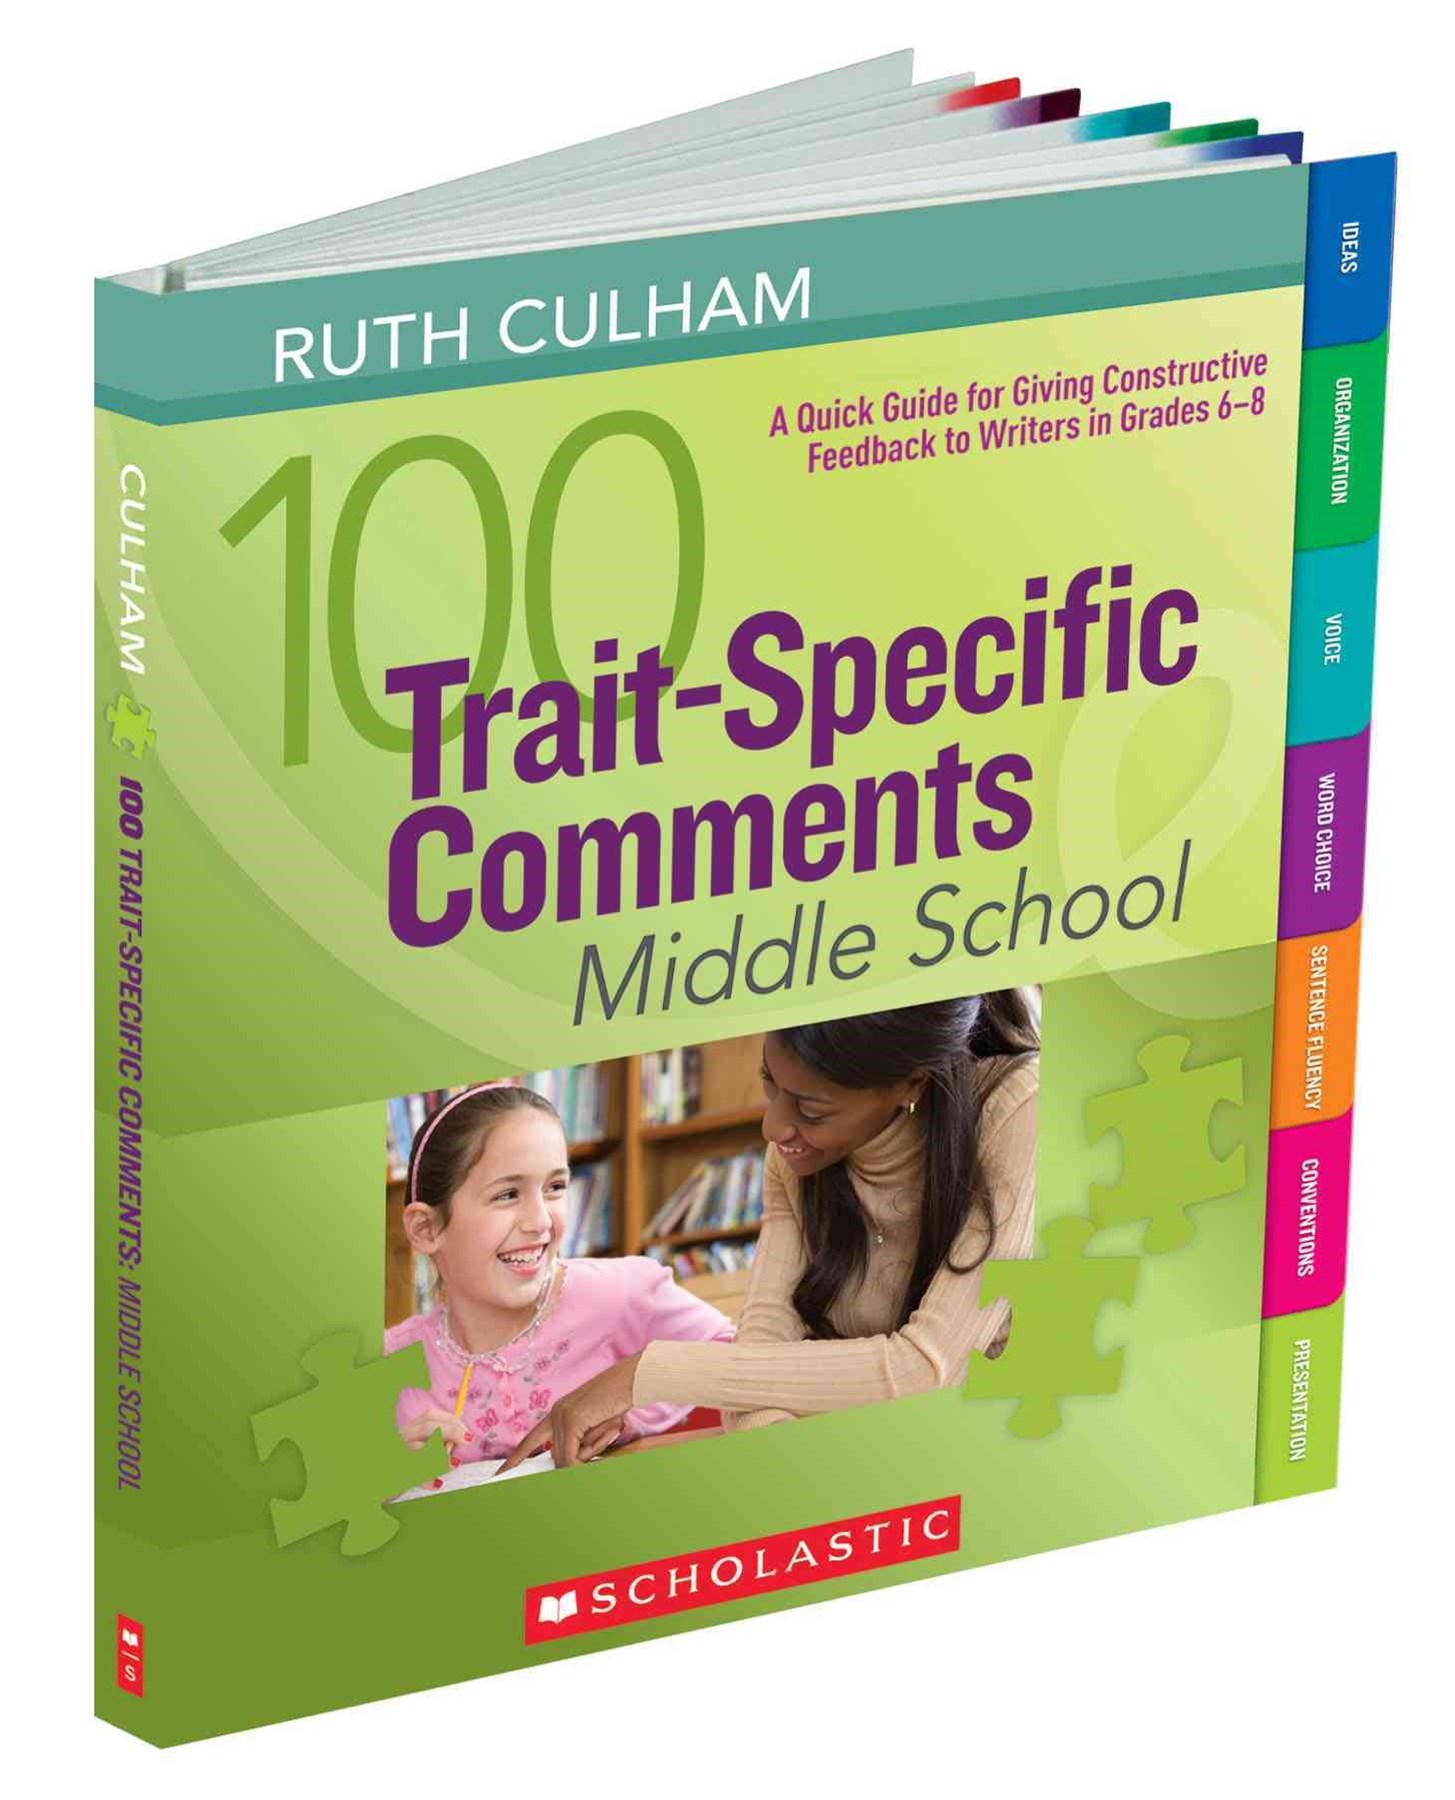 100 Trait-Specific Comments - Middle School